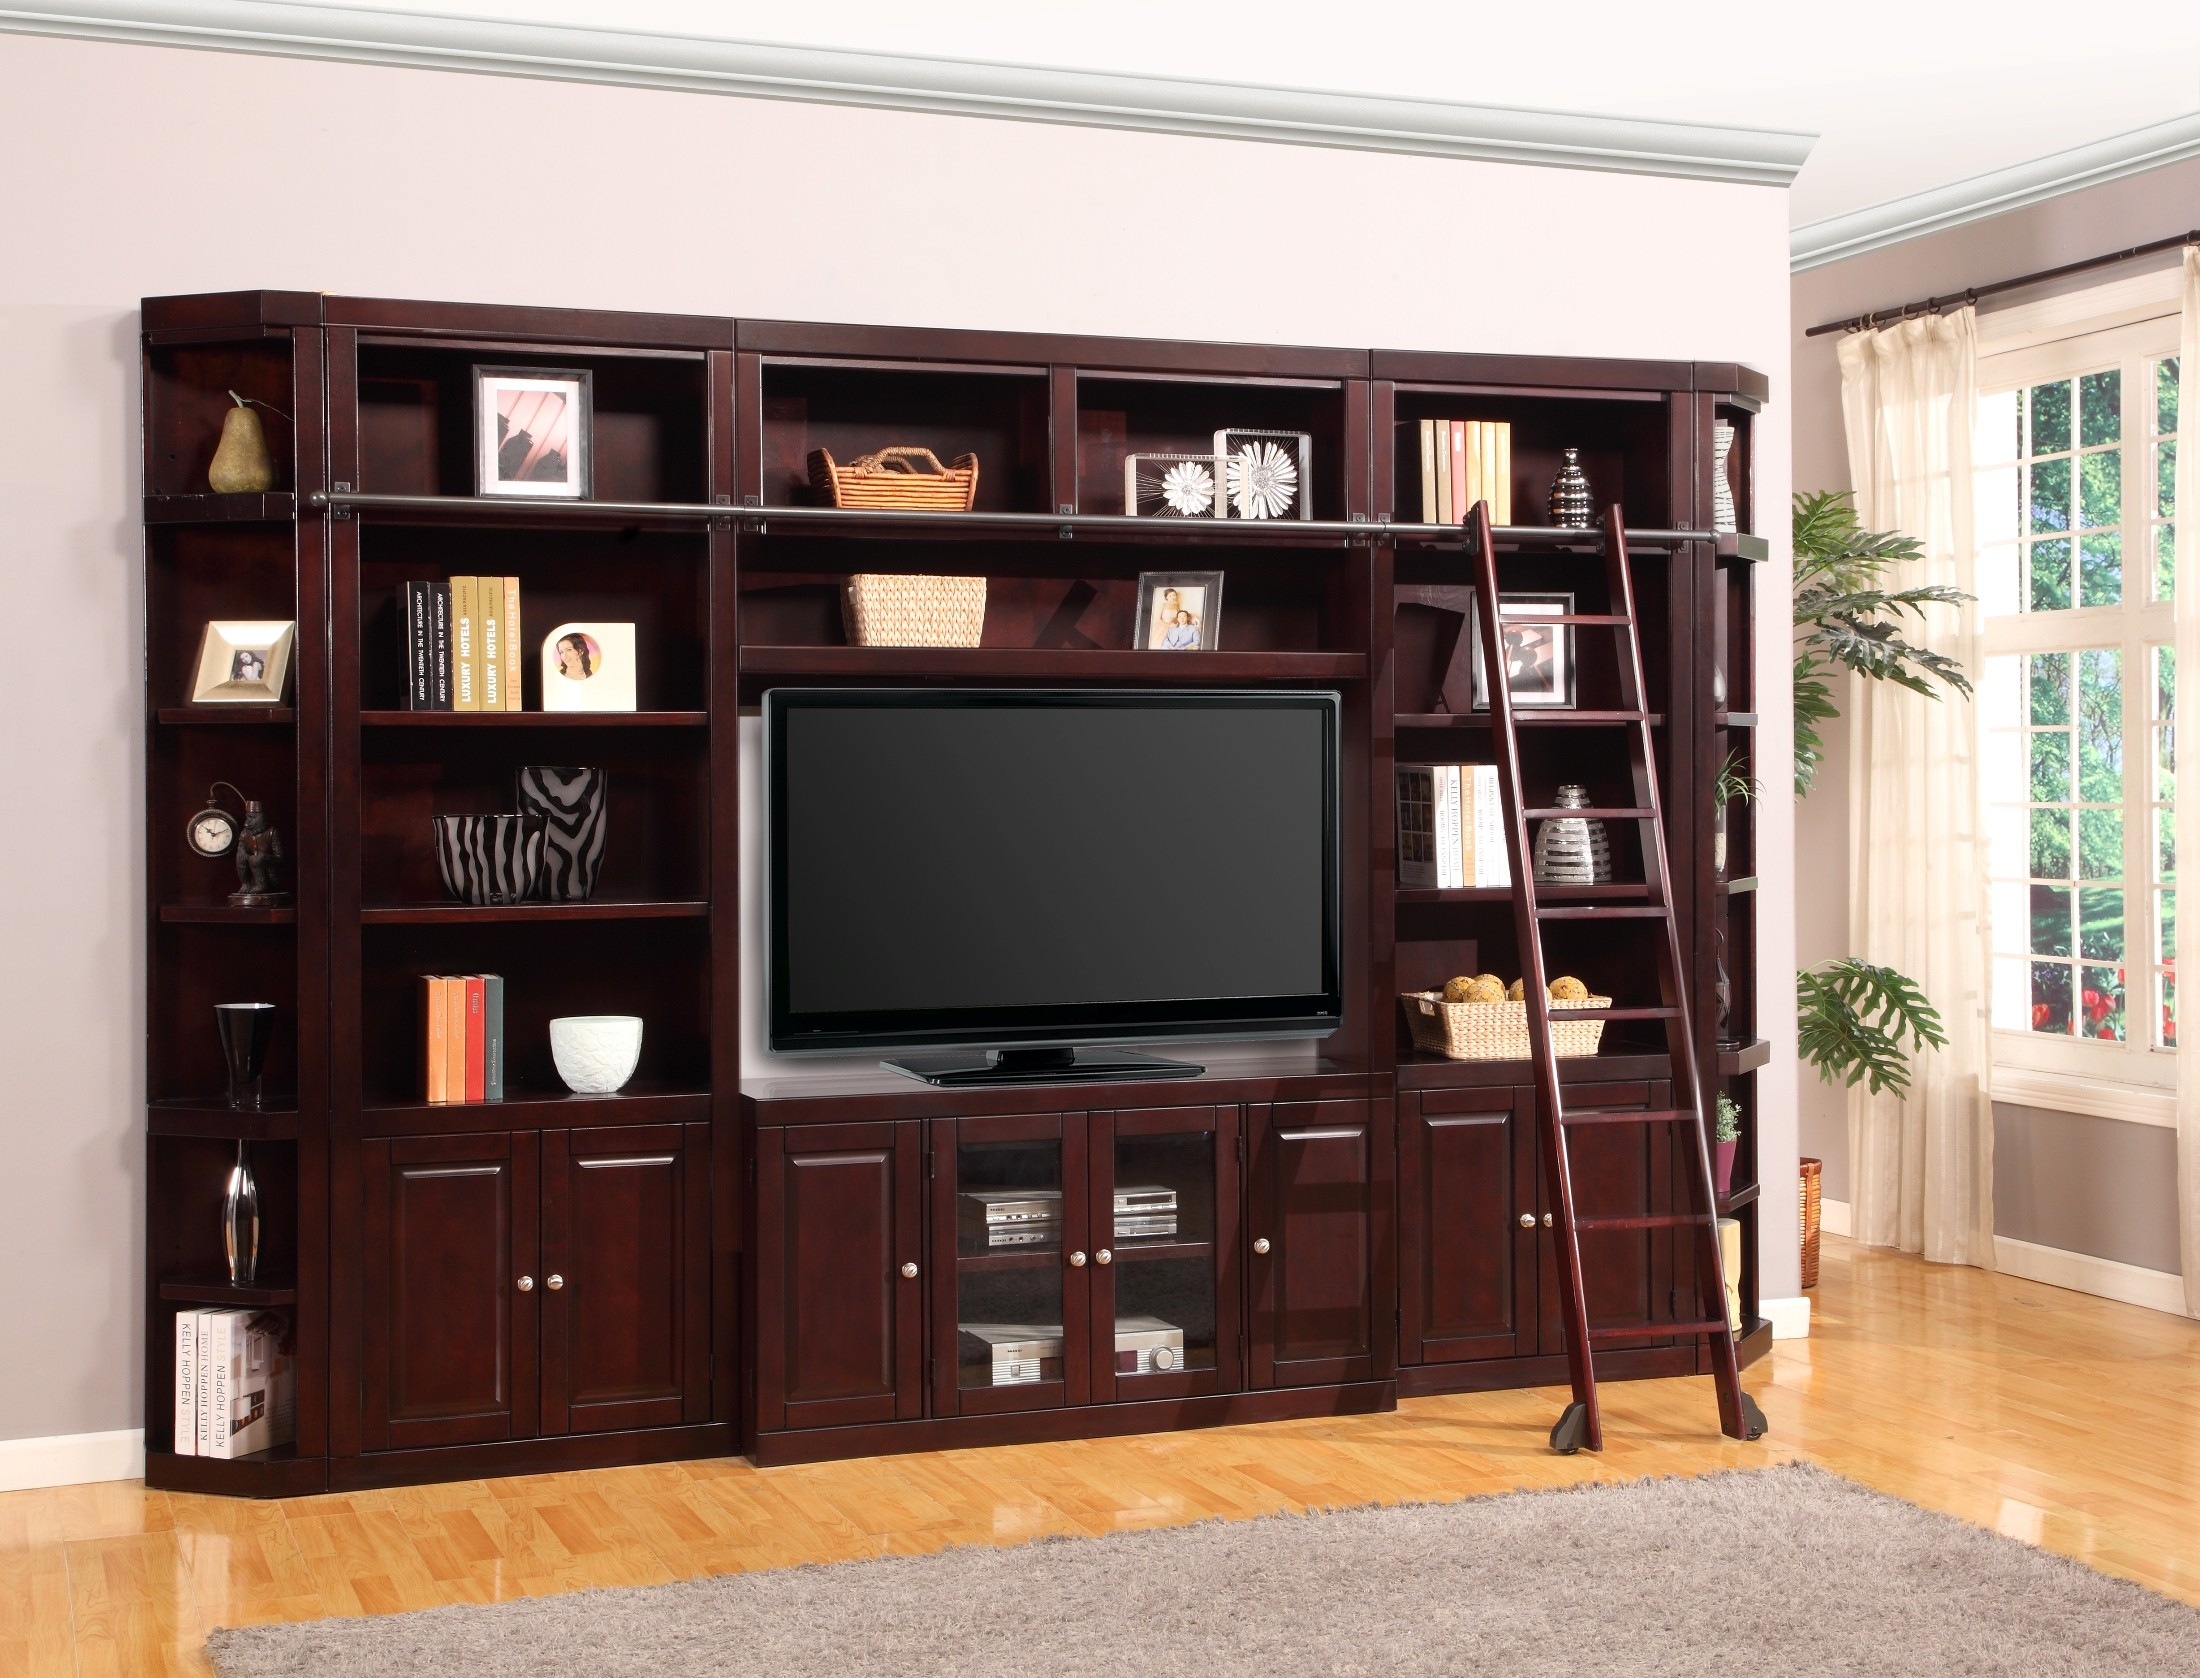 Boston 32 Inch Bookcase Entertainment Wall From Parker